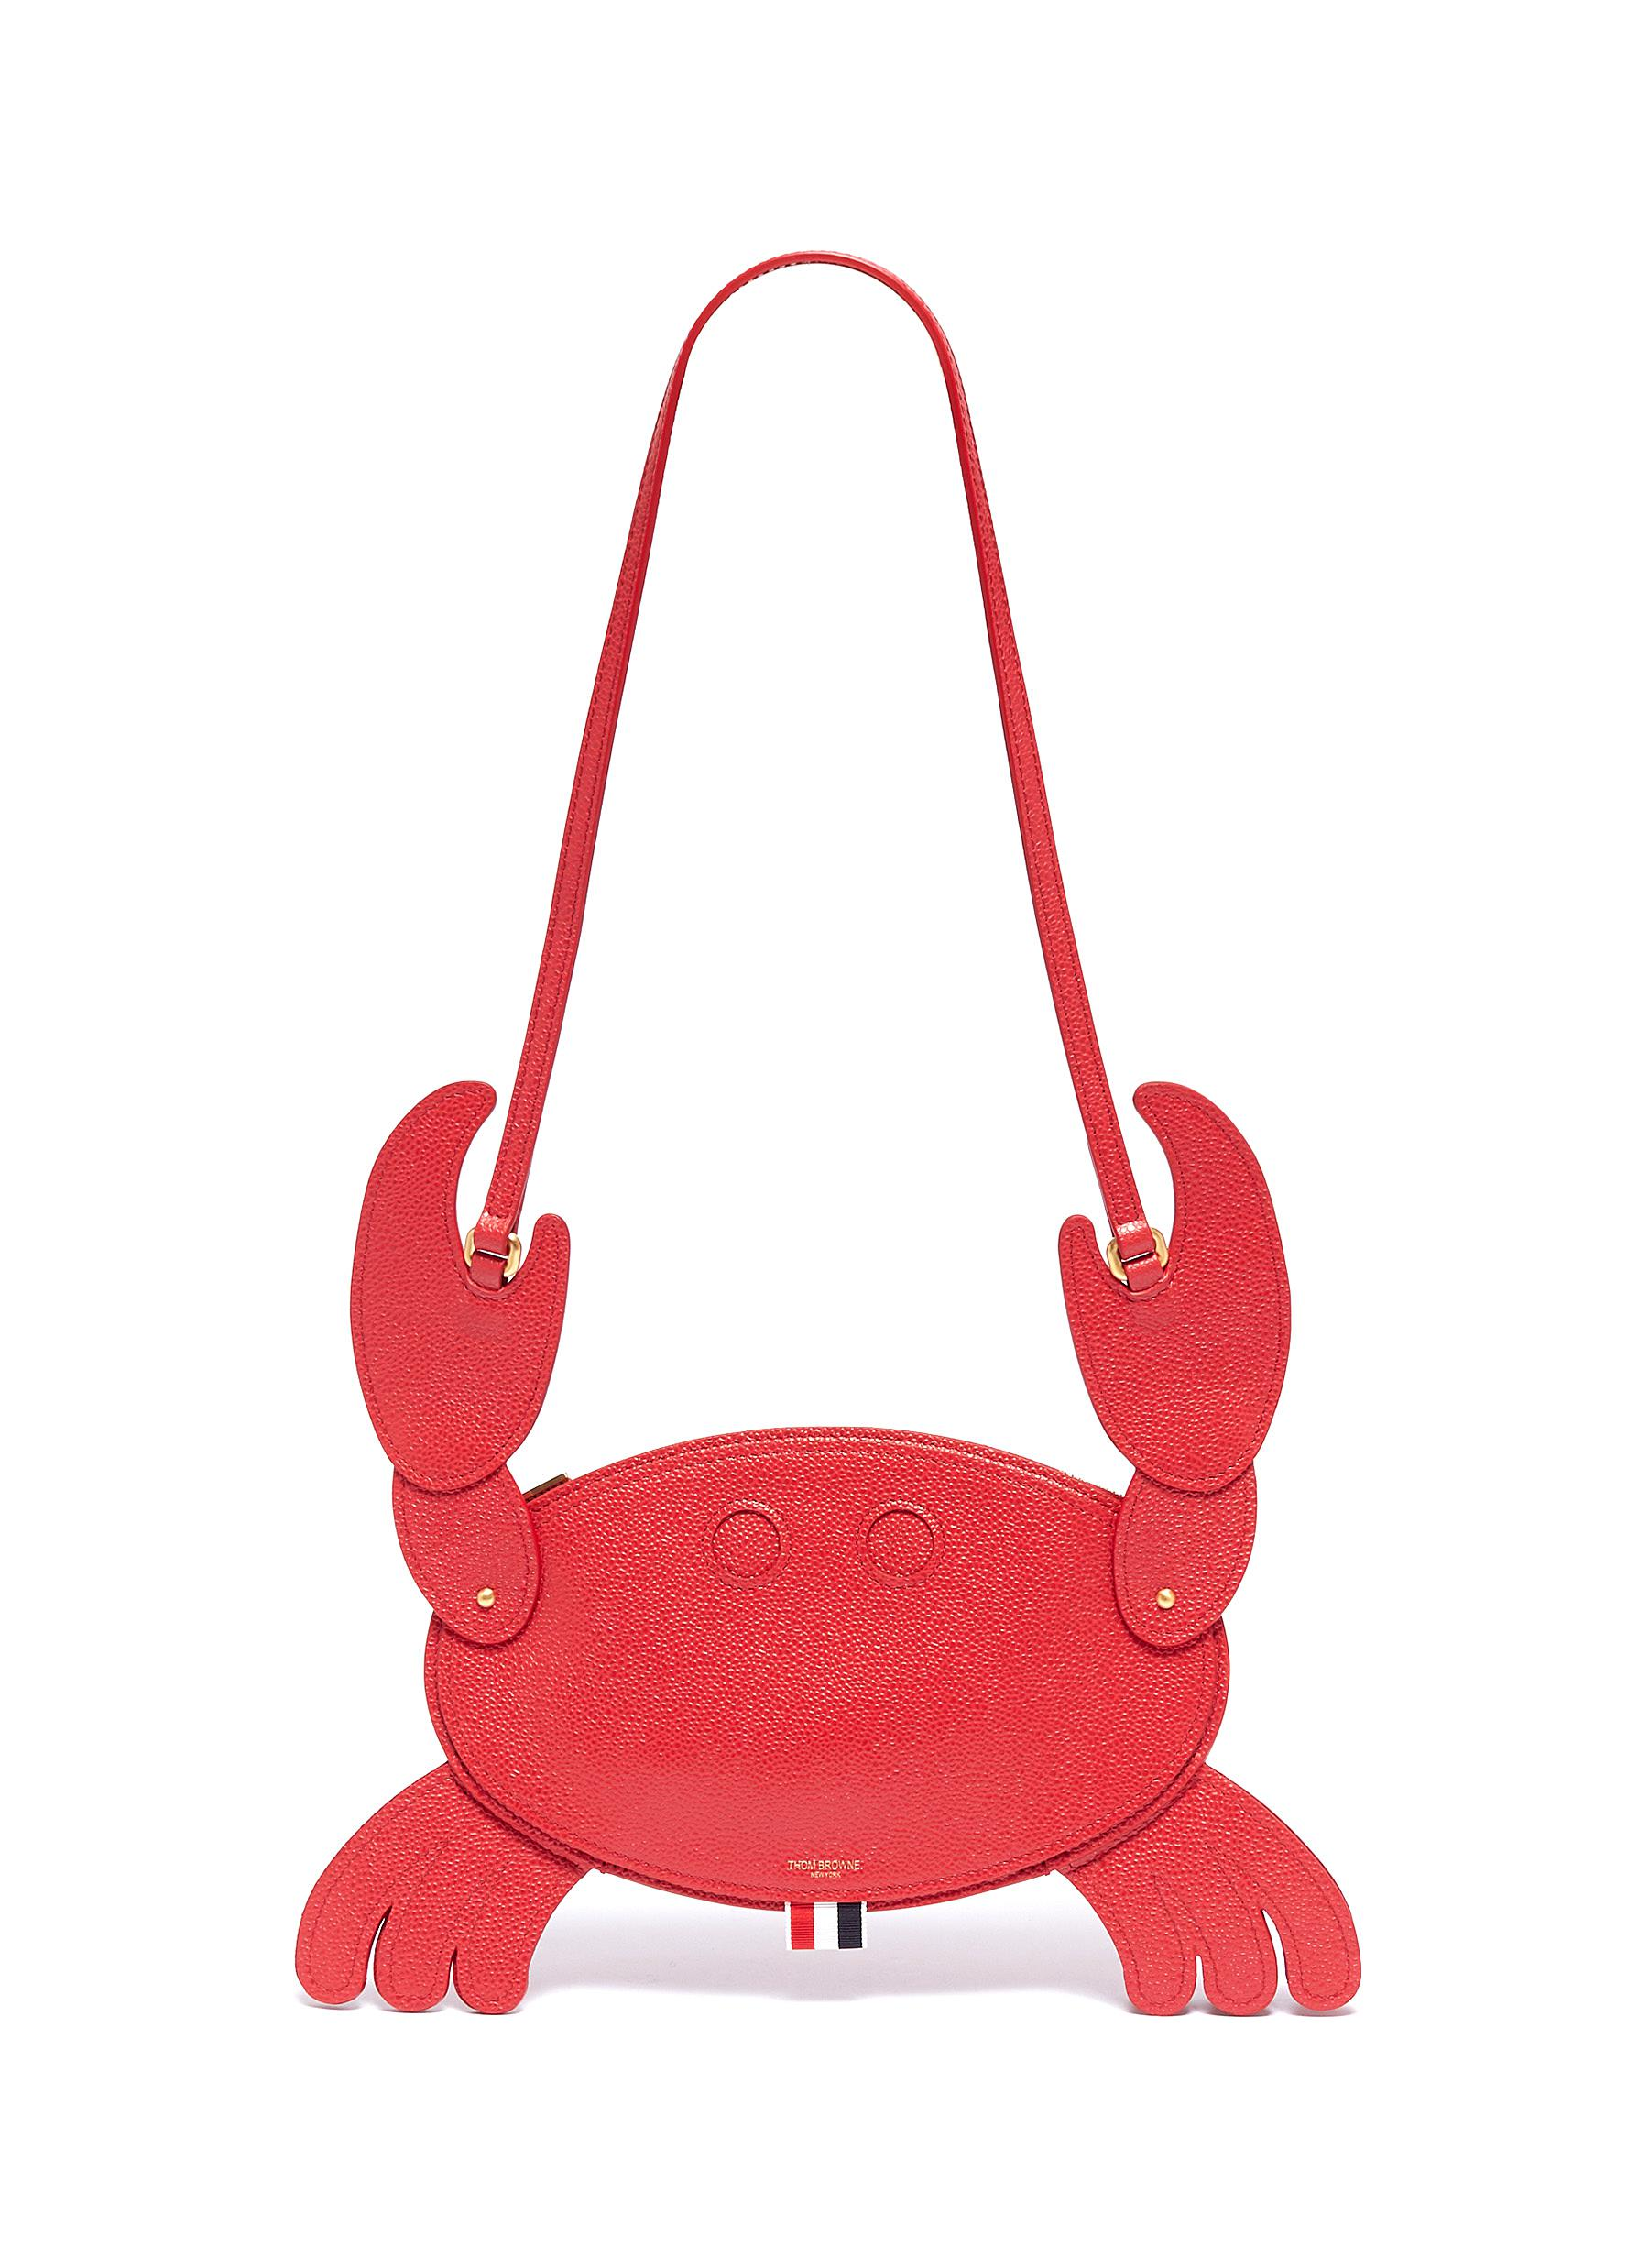 536a692646 Main View - Click To Enlarge - THOM BROWNE - Leather crab crossbody bag